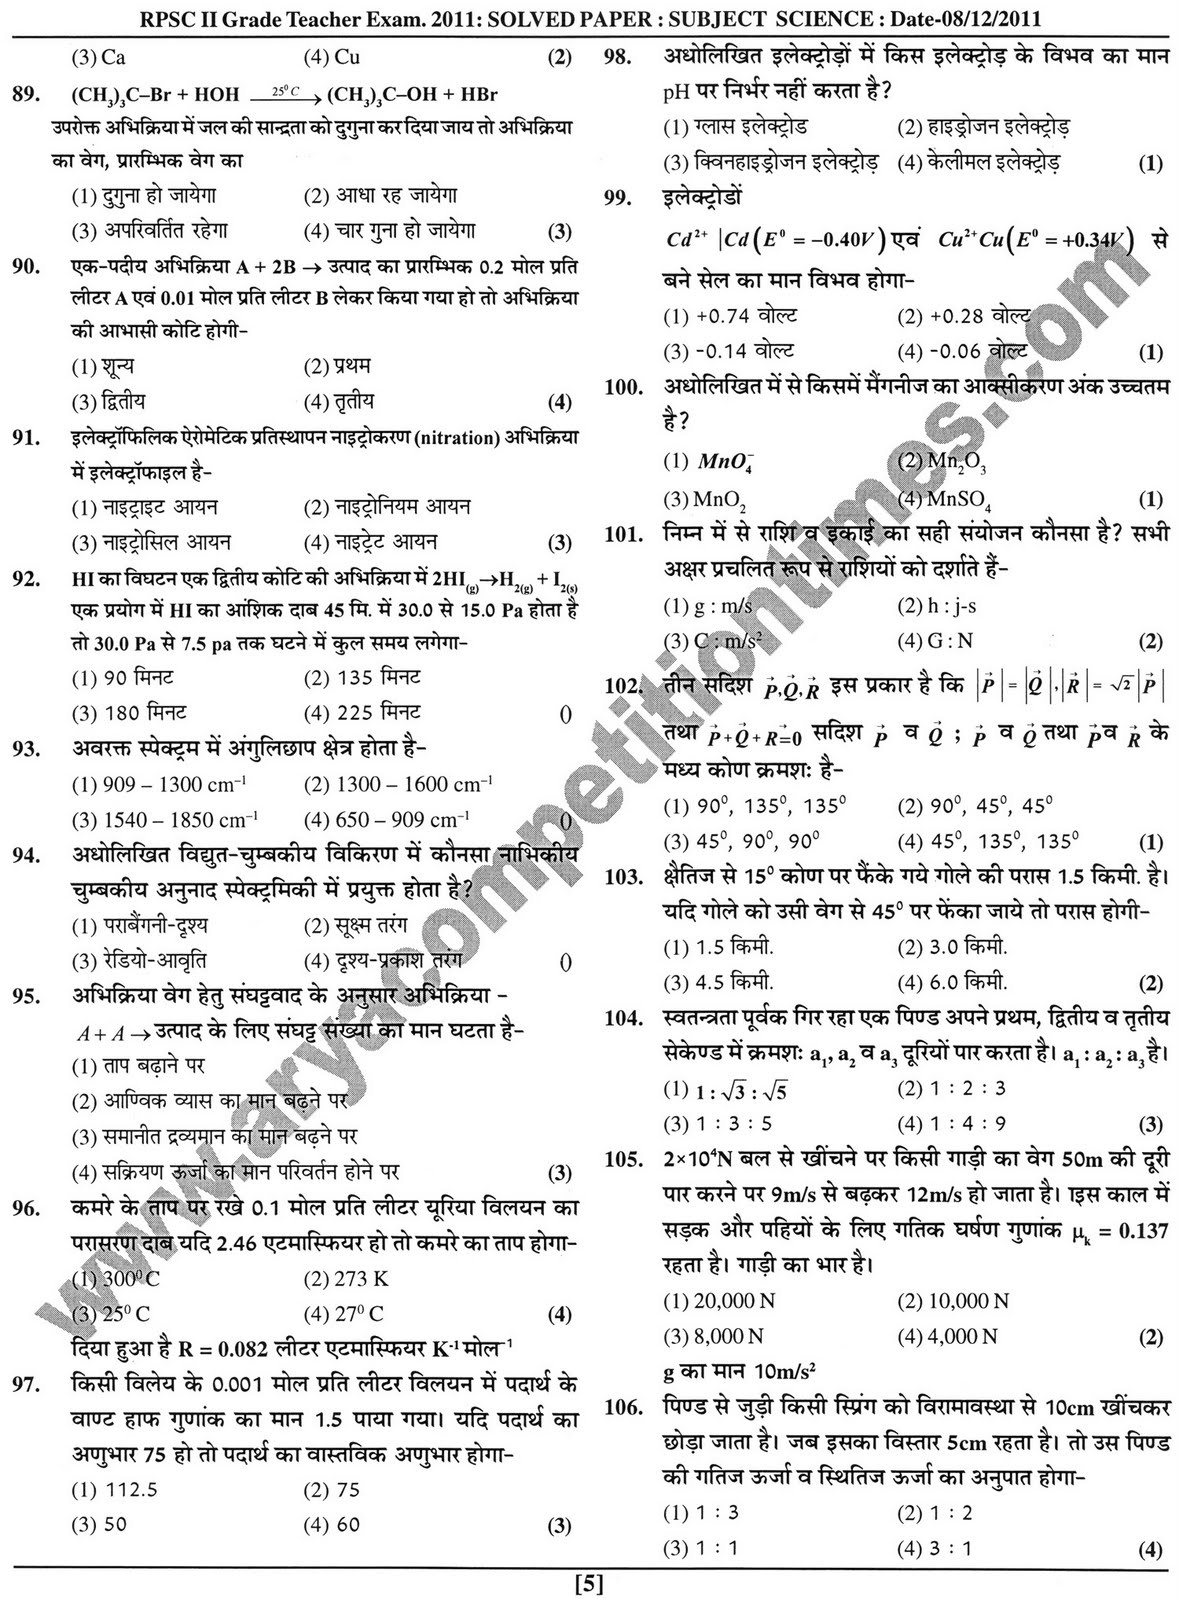 mathematics grade 12 exam papers 2011